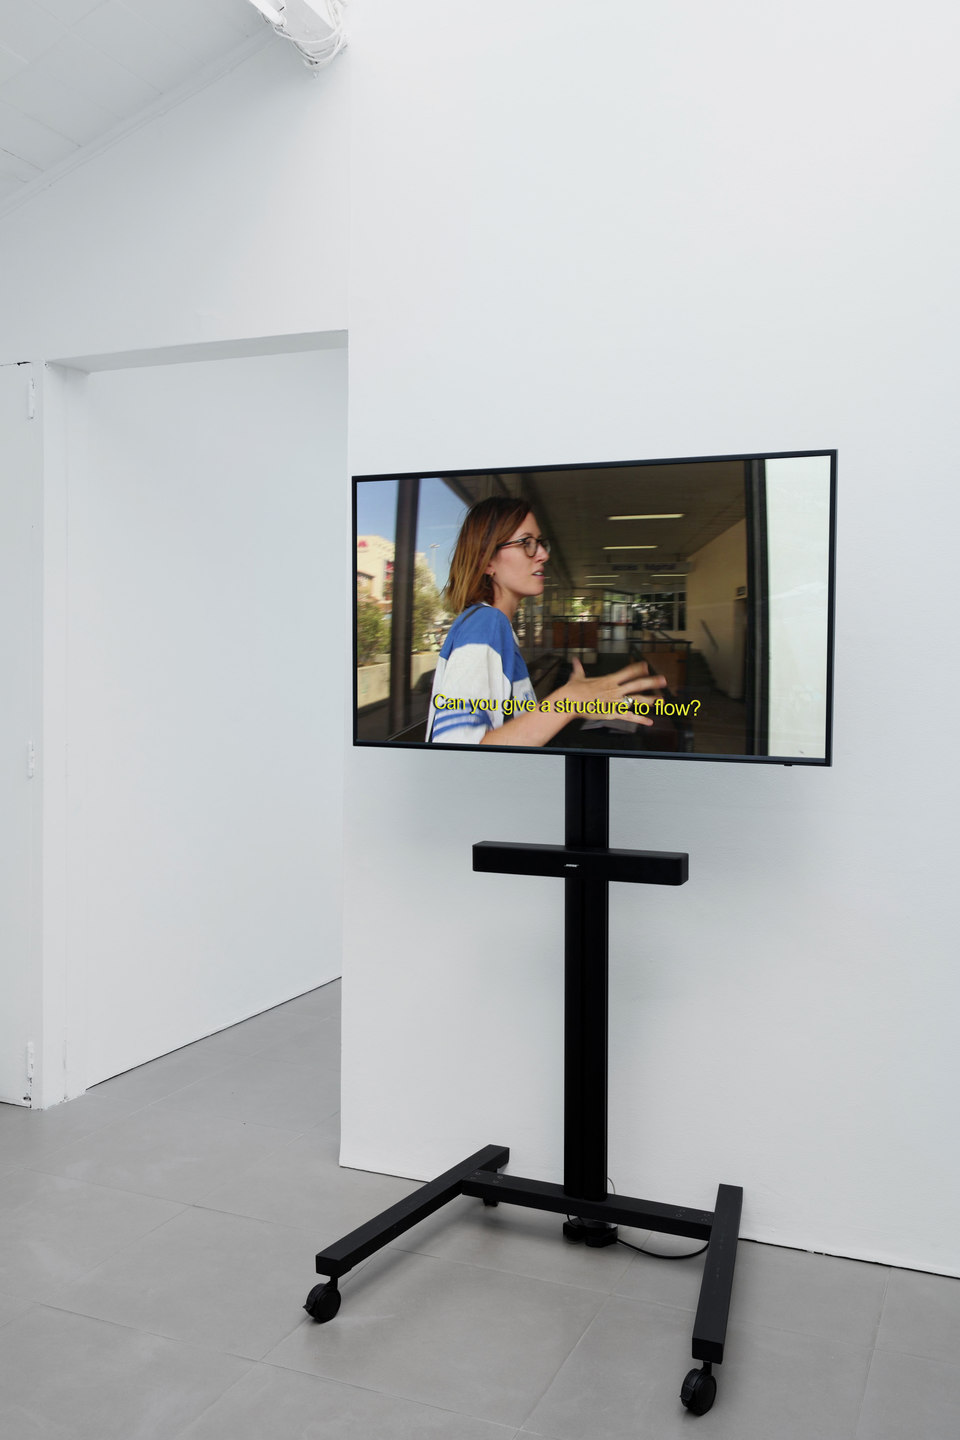 Camilla Wills, Channels, 2015, digital HD video, 3:26 mins, Cell Project Space